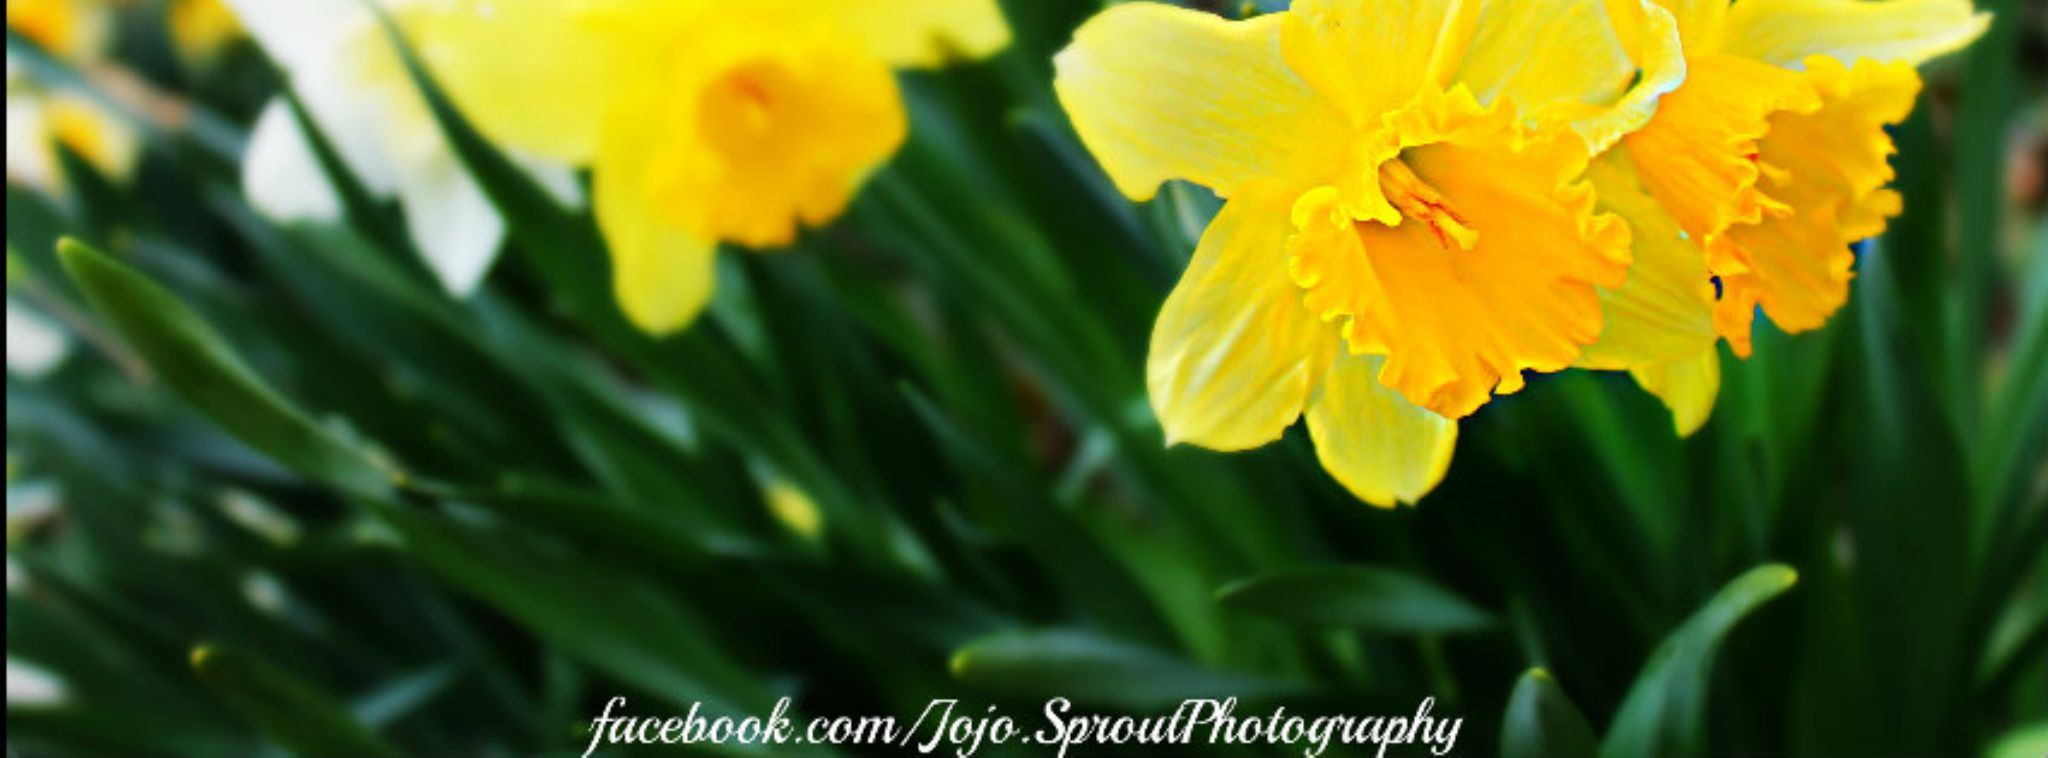 Bright yellow by JoJoSprout Photography